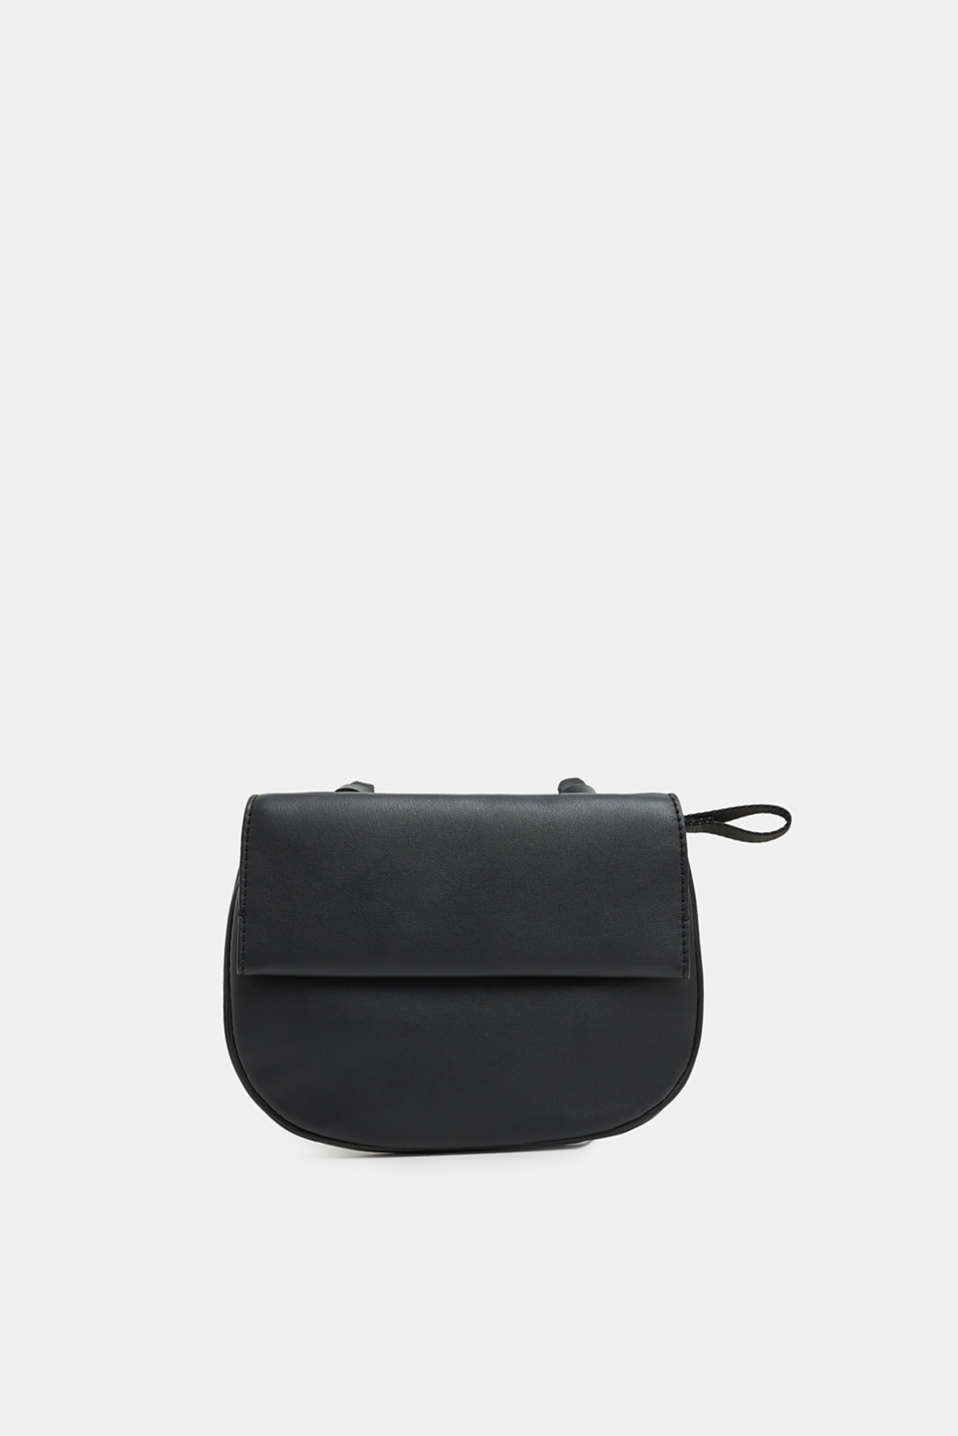 edc - Small shoulder bag in a semi-circular design